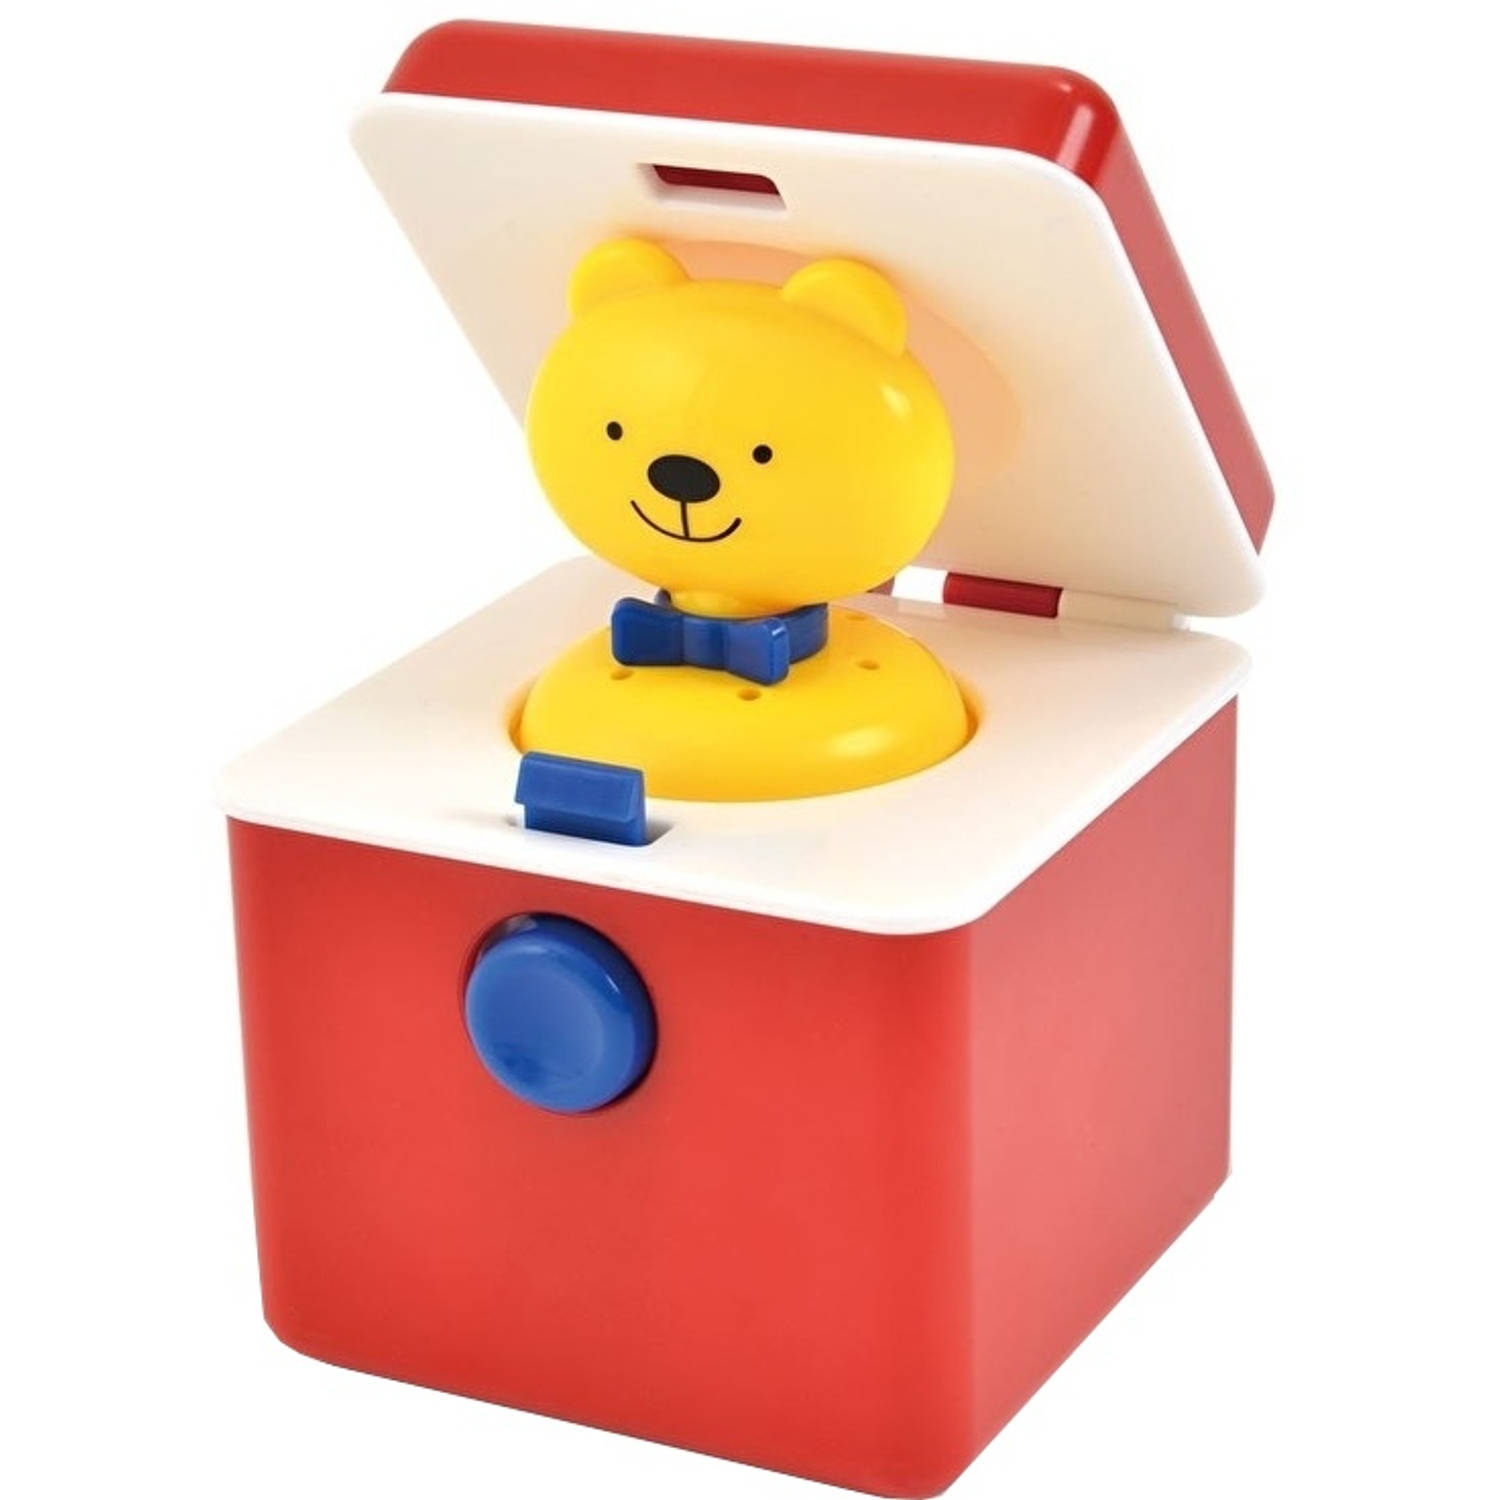 Afbeelding van Ambi Toys Ted-in-a-box 9,5 cm rood